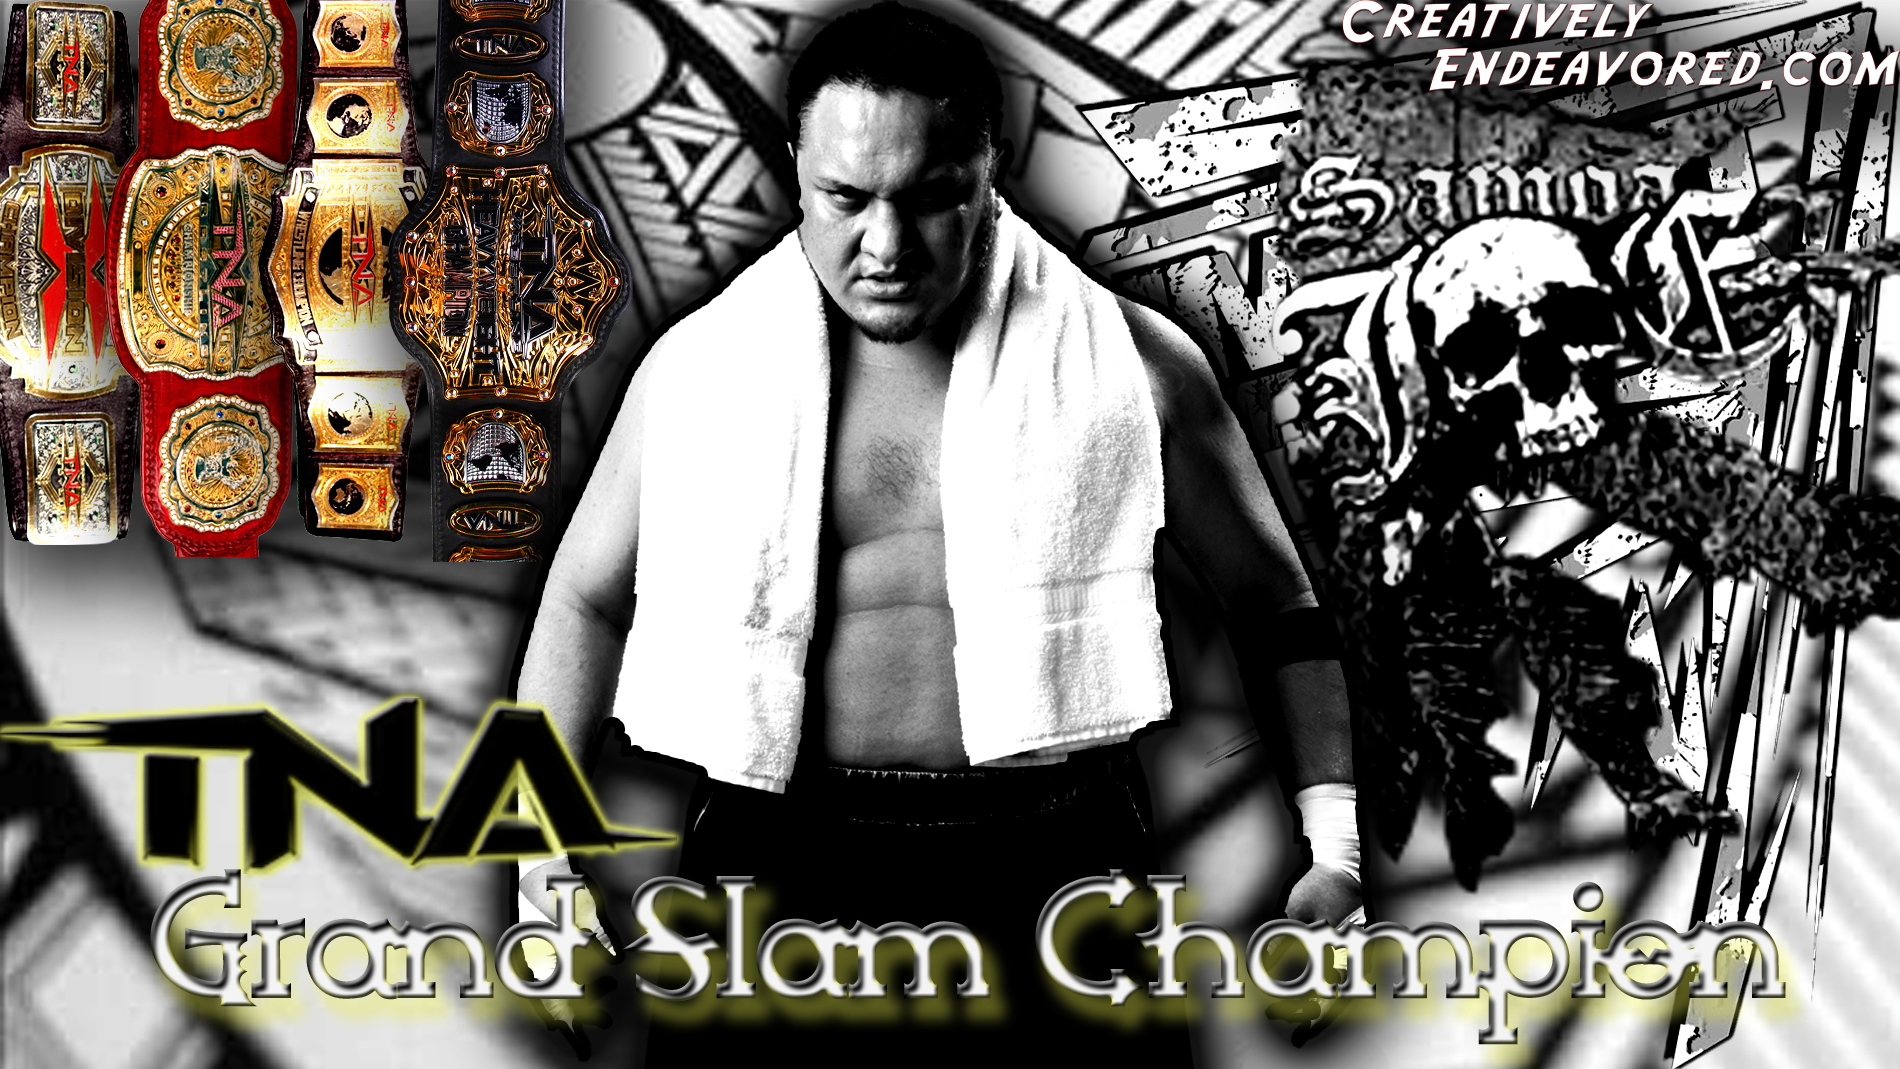 https://creativelyendeavored.files.wordpress.com/2012/10/samoa-joe-grand-slam-champion.jpg